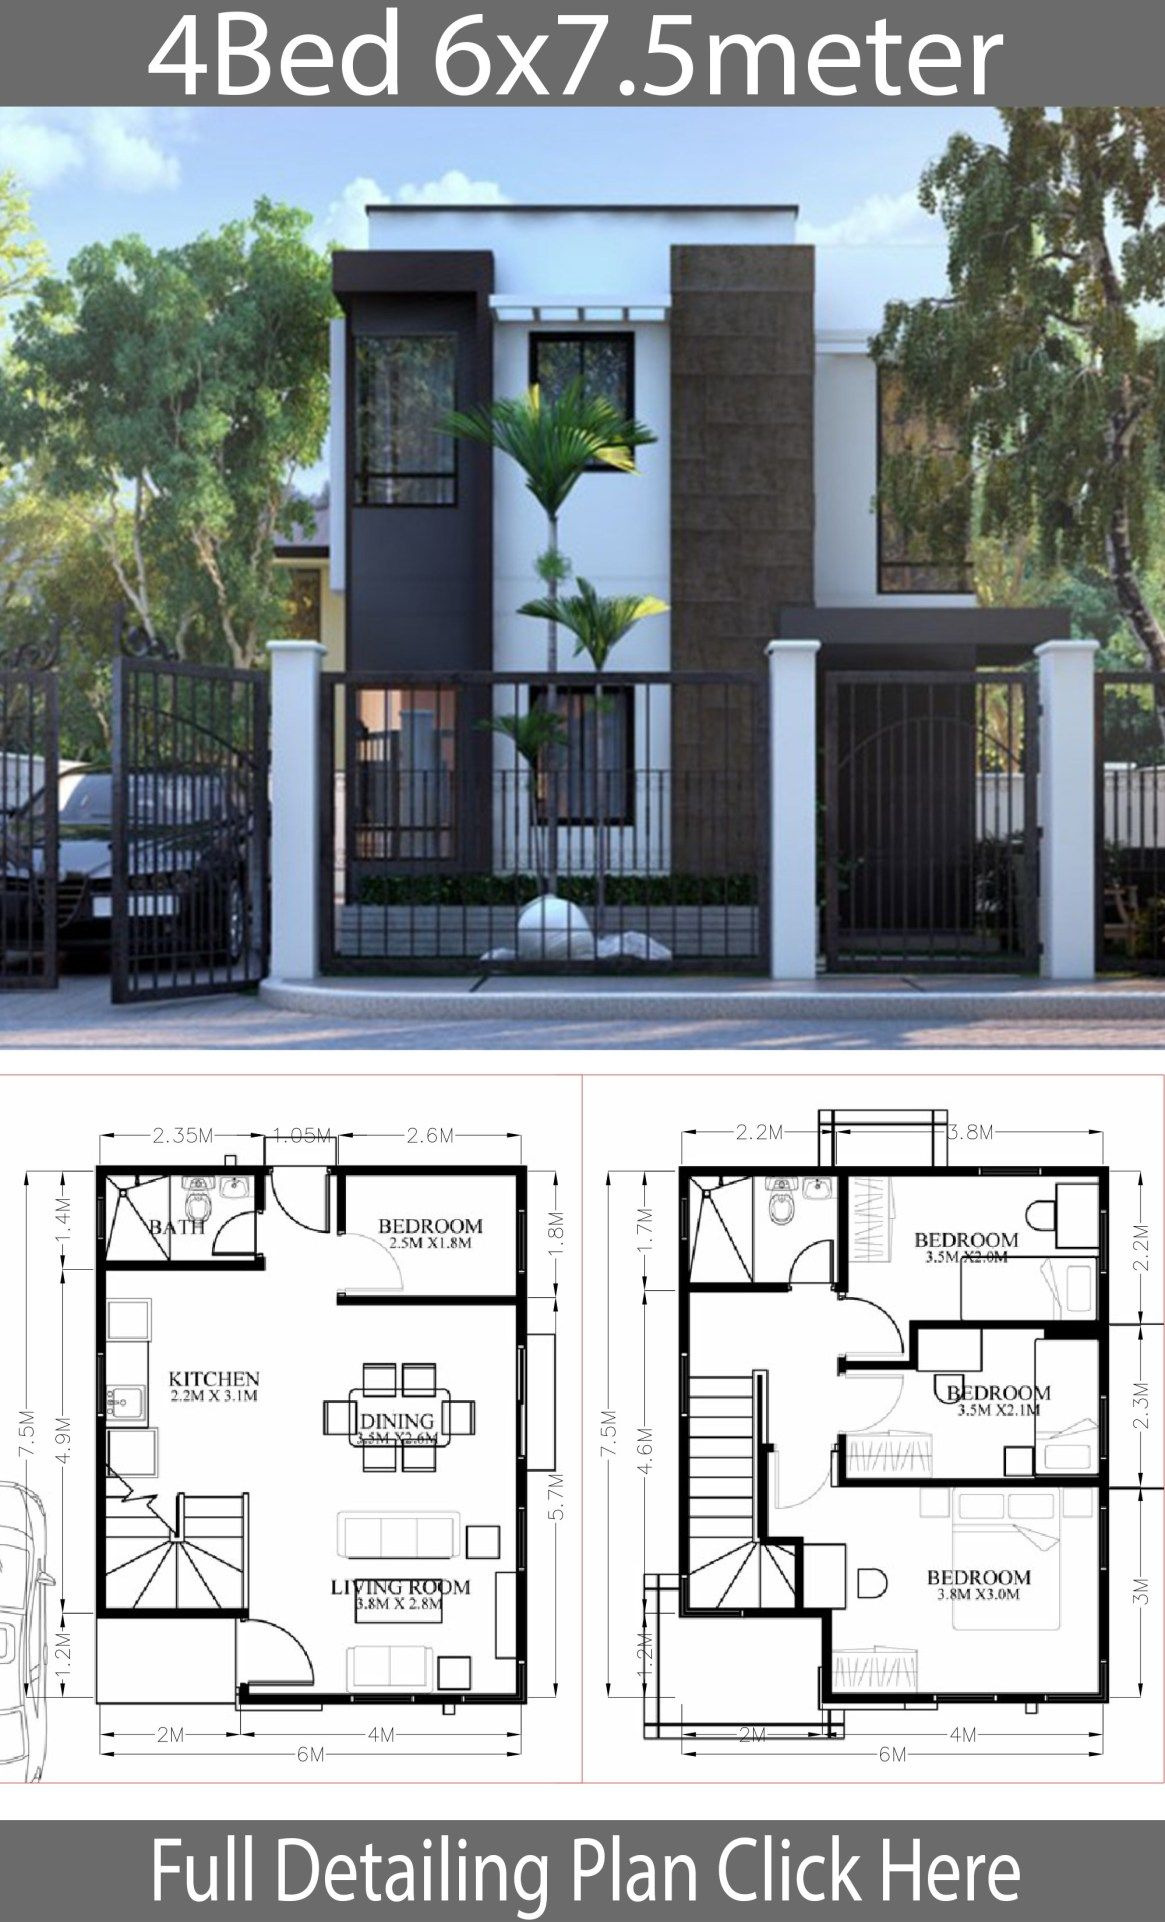 Small House Designs and Floor Plans Beautiful Small Home Design Plan 6x7 5m with 4 Bedrooms